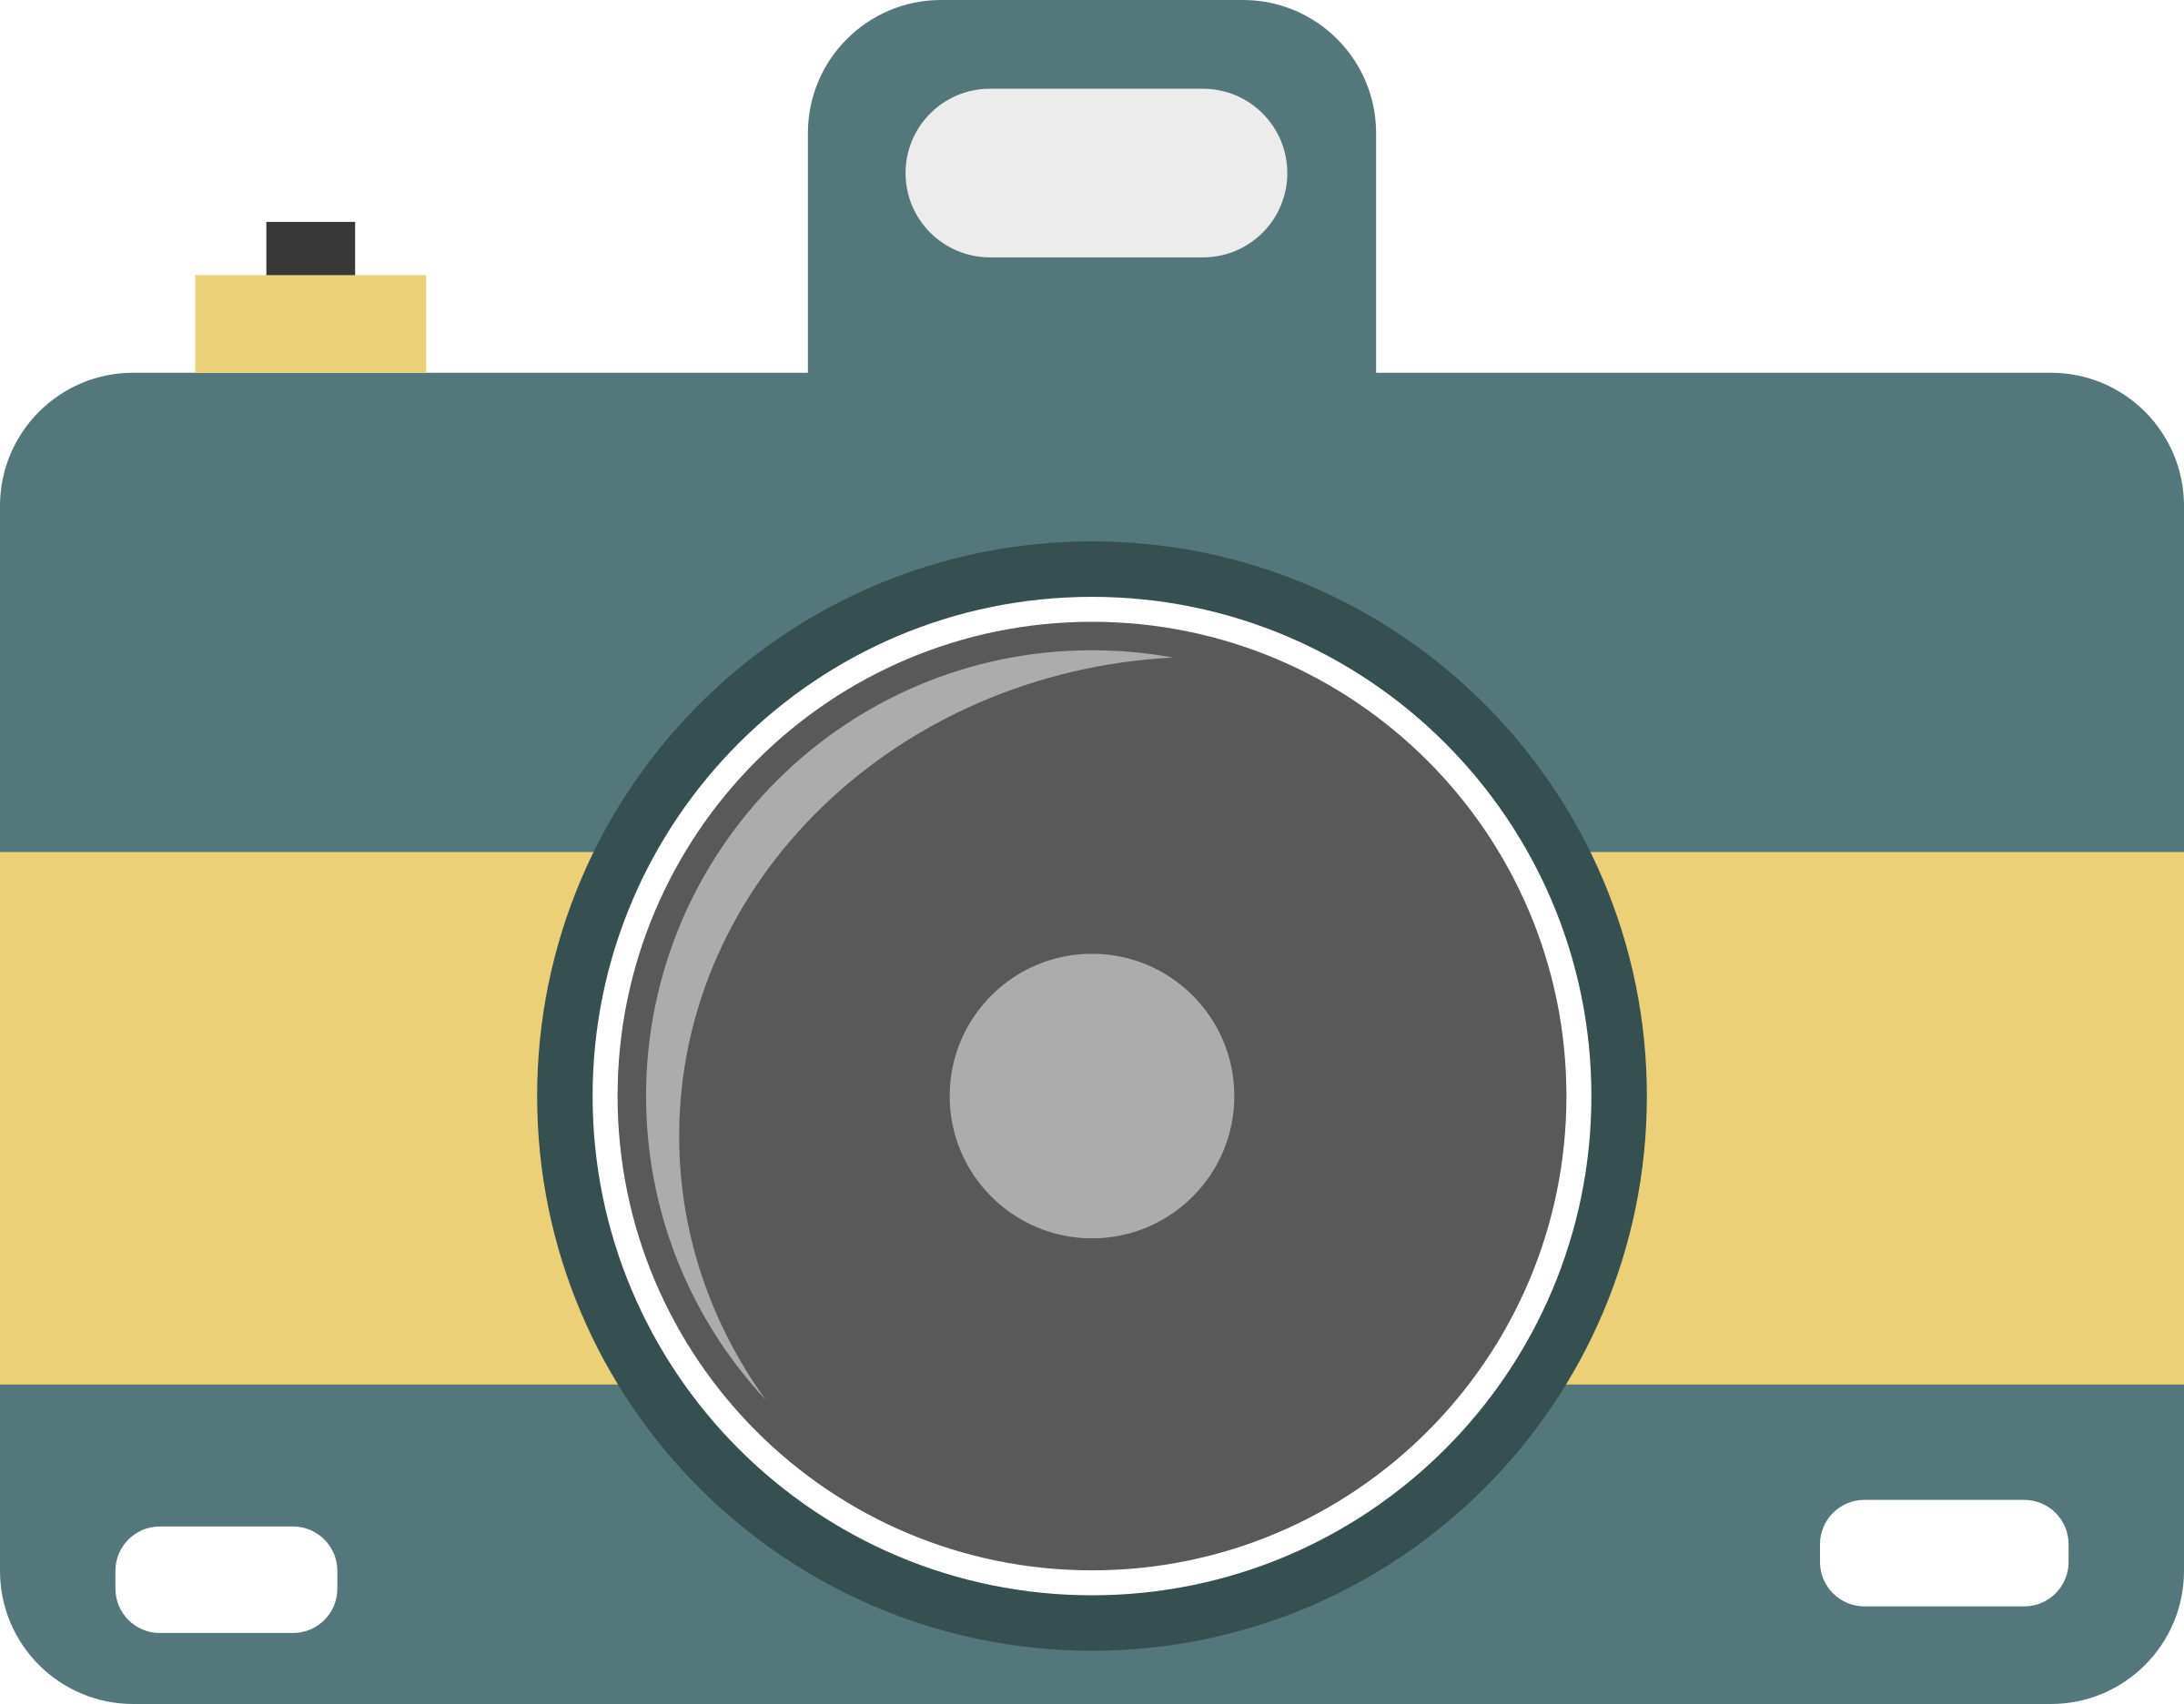 Camara vector vintage camera. Clipart png huge